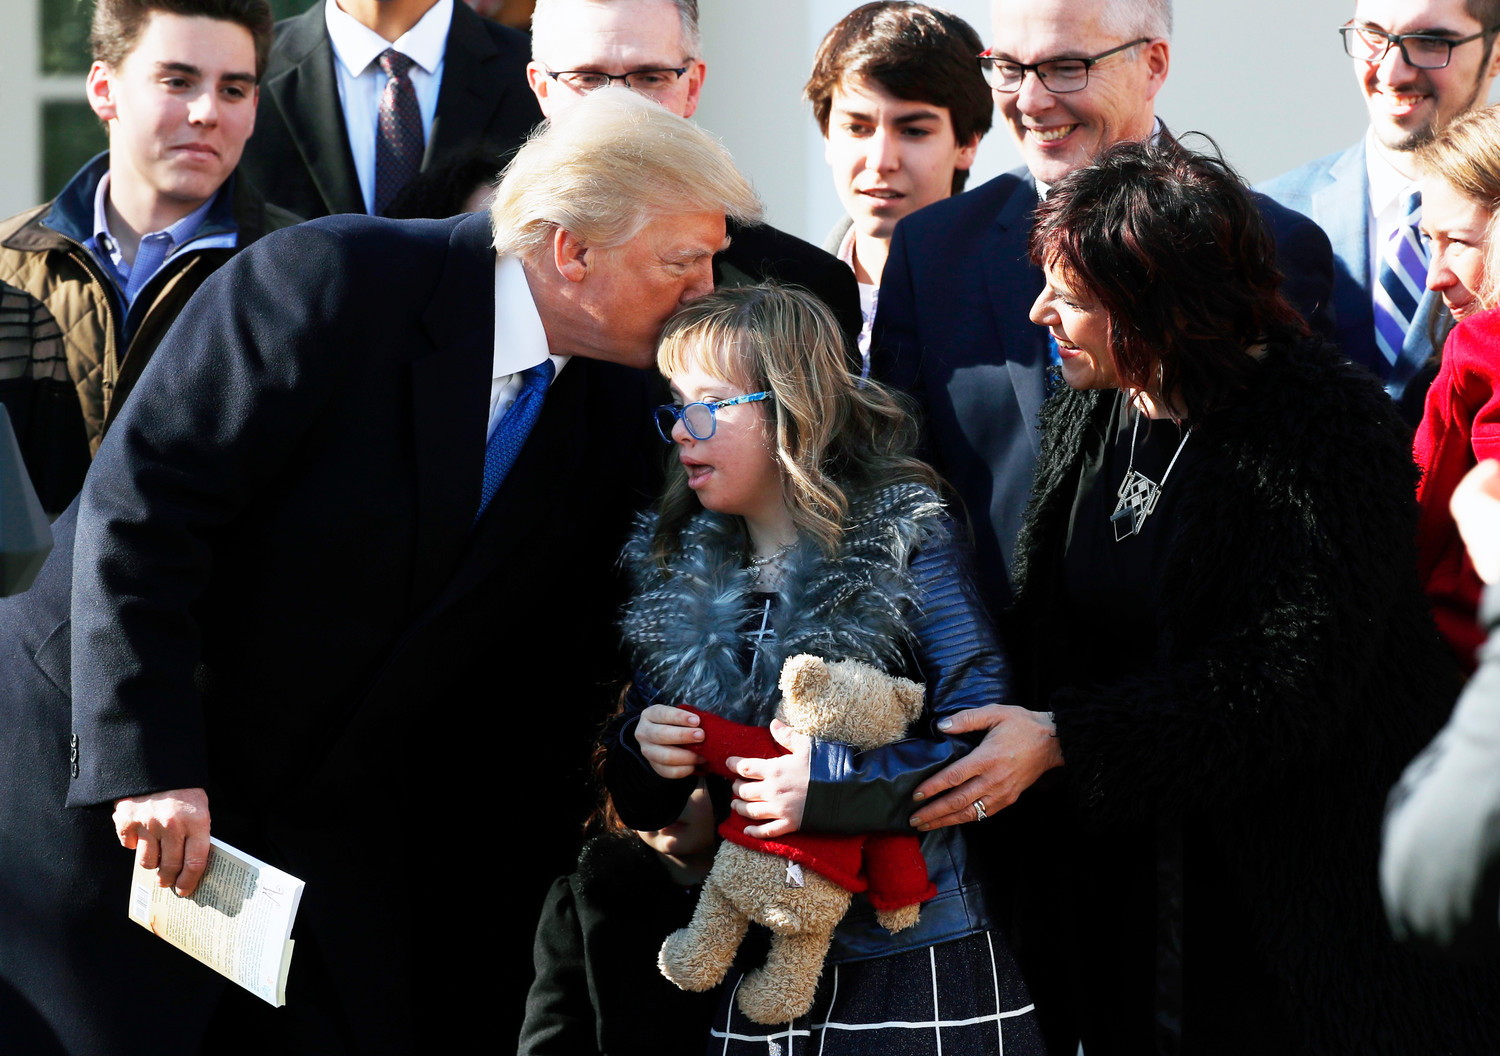 President Donald Trump greets a girl after addressing participants at the March for Life rally from the Rose Garden at the White House.